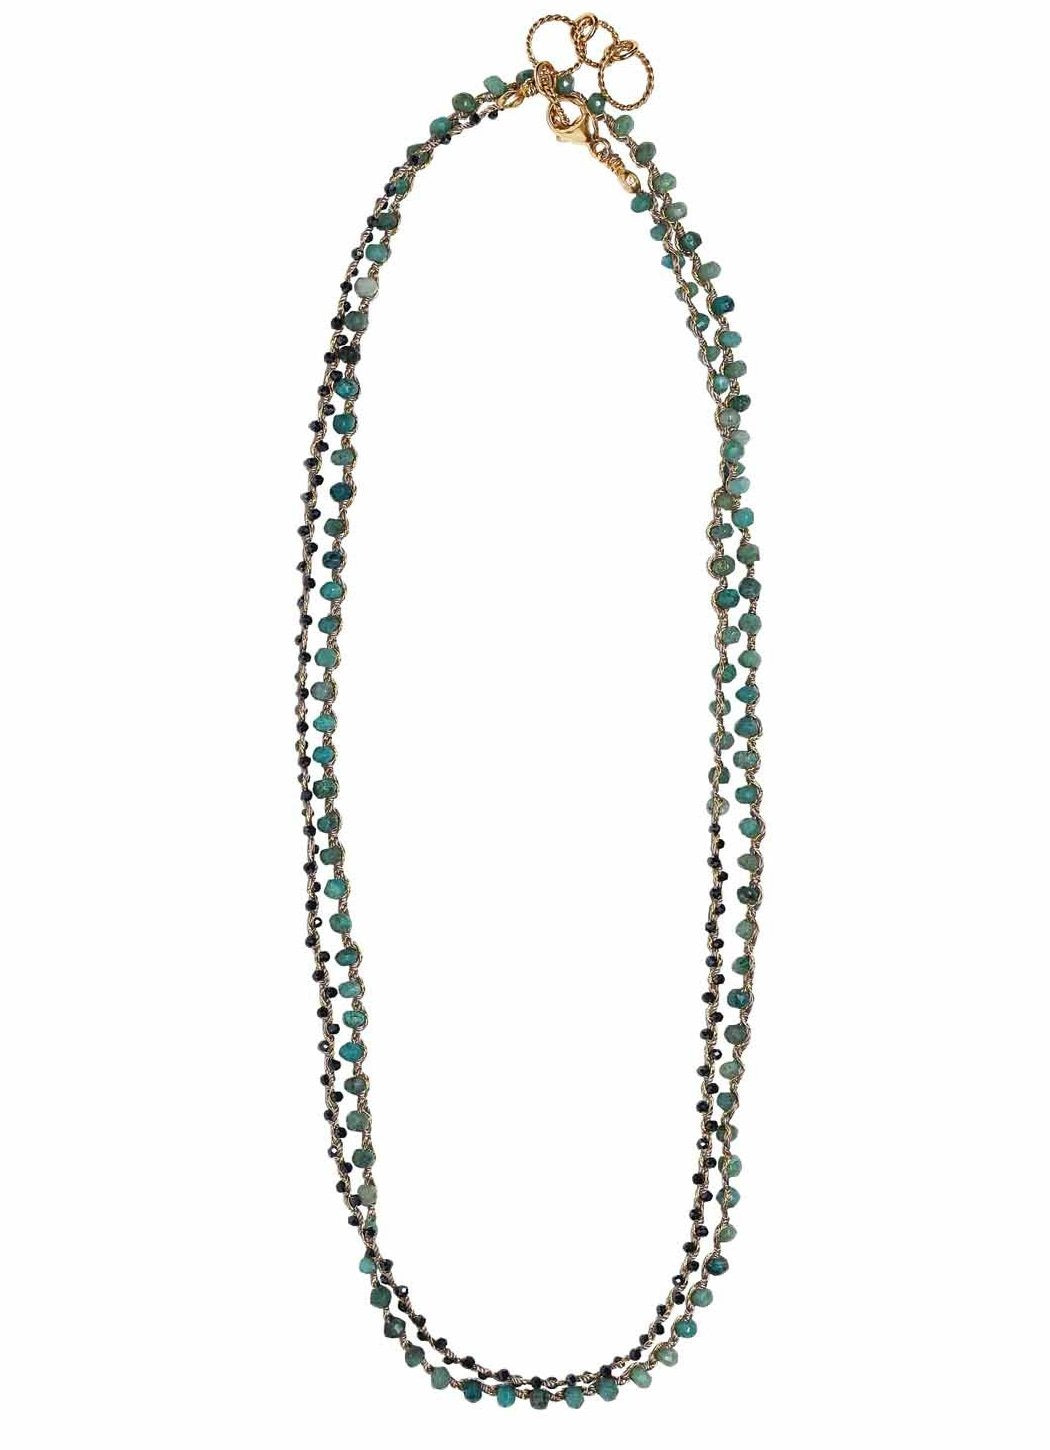 Woven Long Necklace in Chrysocolla & Midnight Spinel | Balance Weave